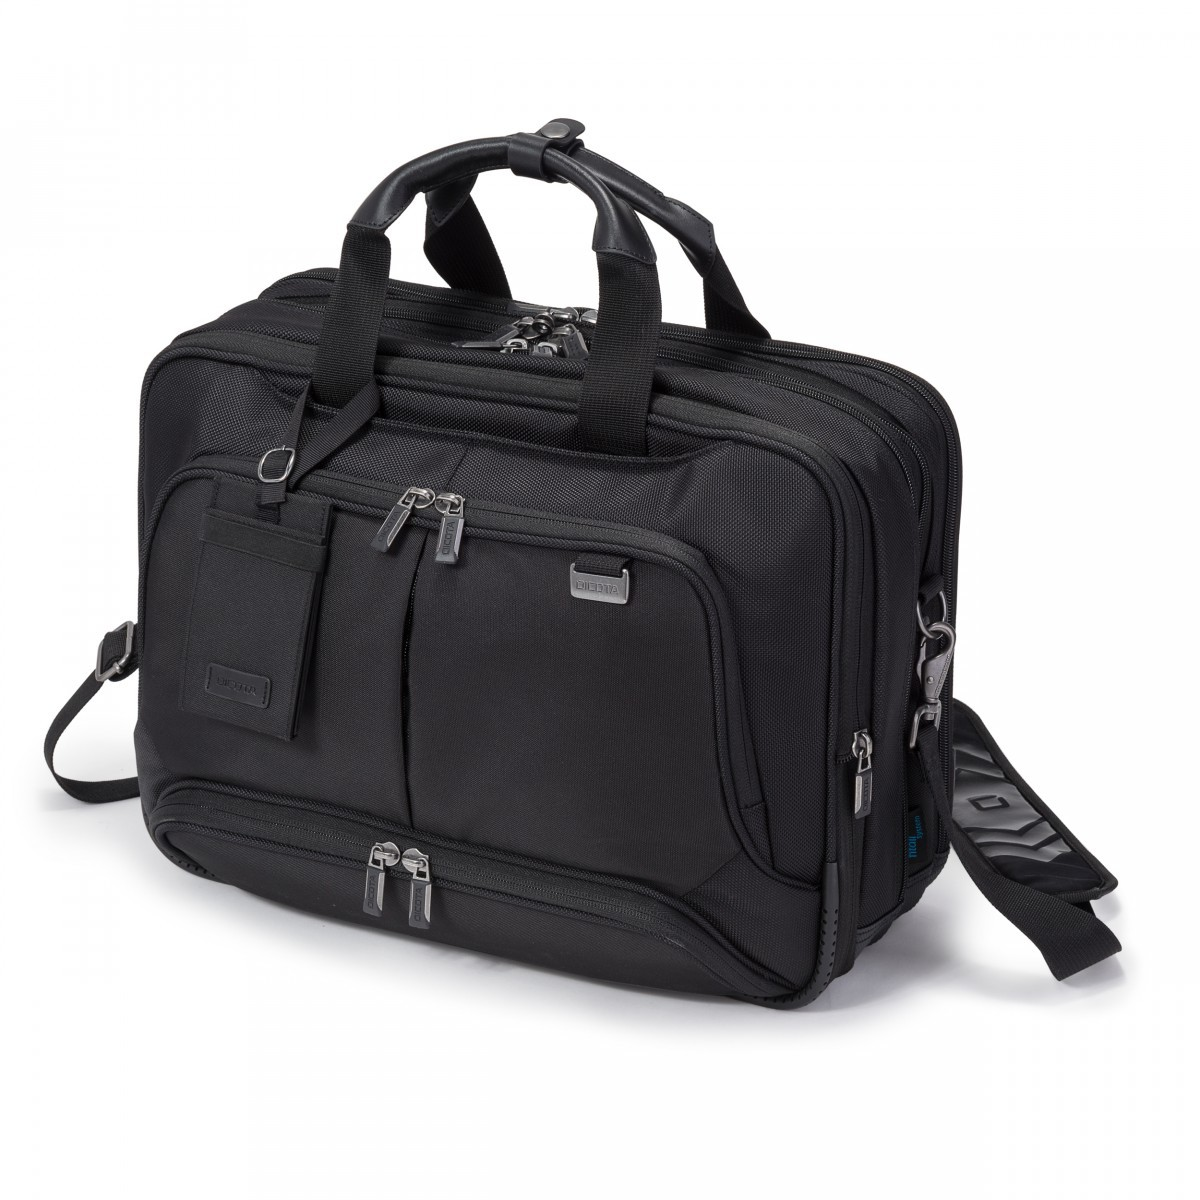 geanta notebook D30844 Top Traveller Twin PRO 14-15.6 inch